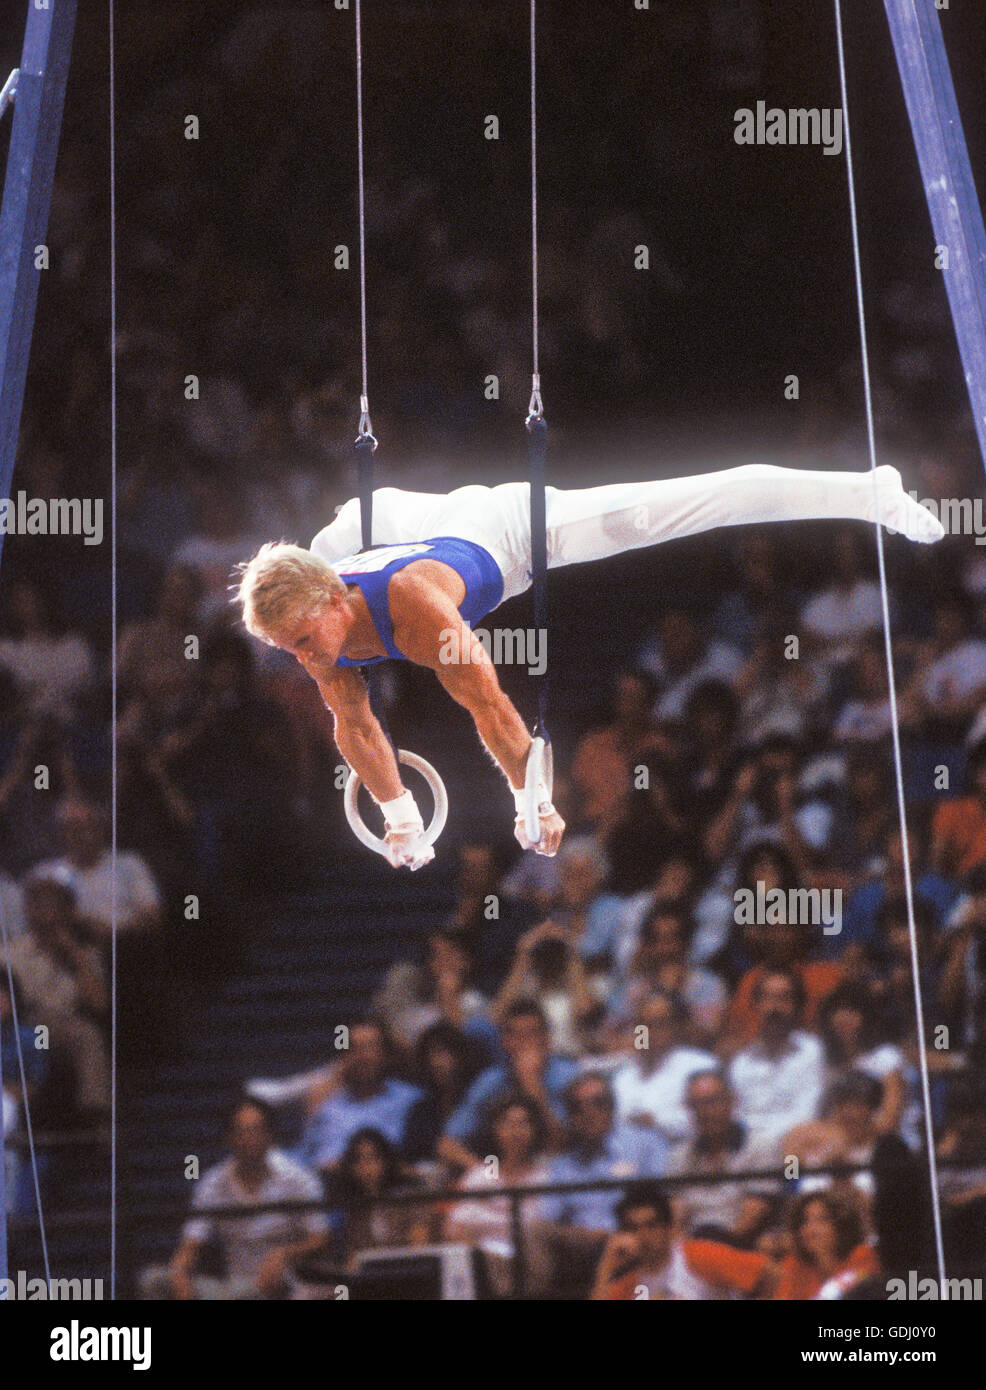 Bart Conner of USA performs on rings at 1984 Olympic Games in Los Angeles. - Stock Image